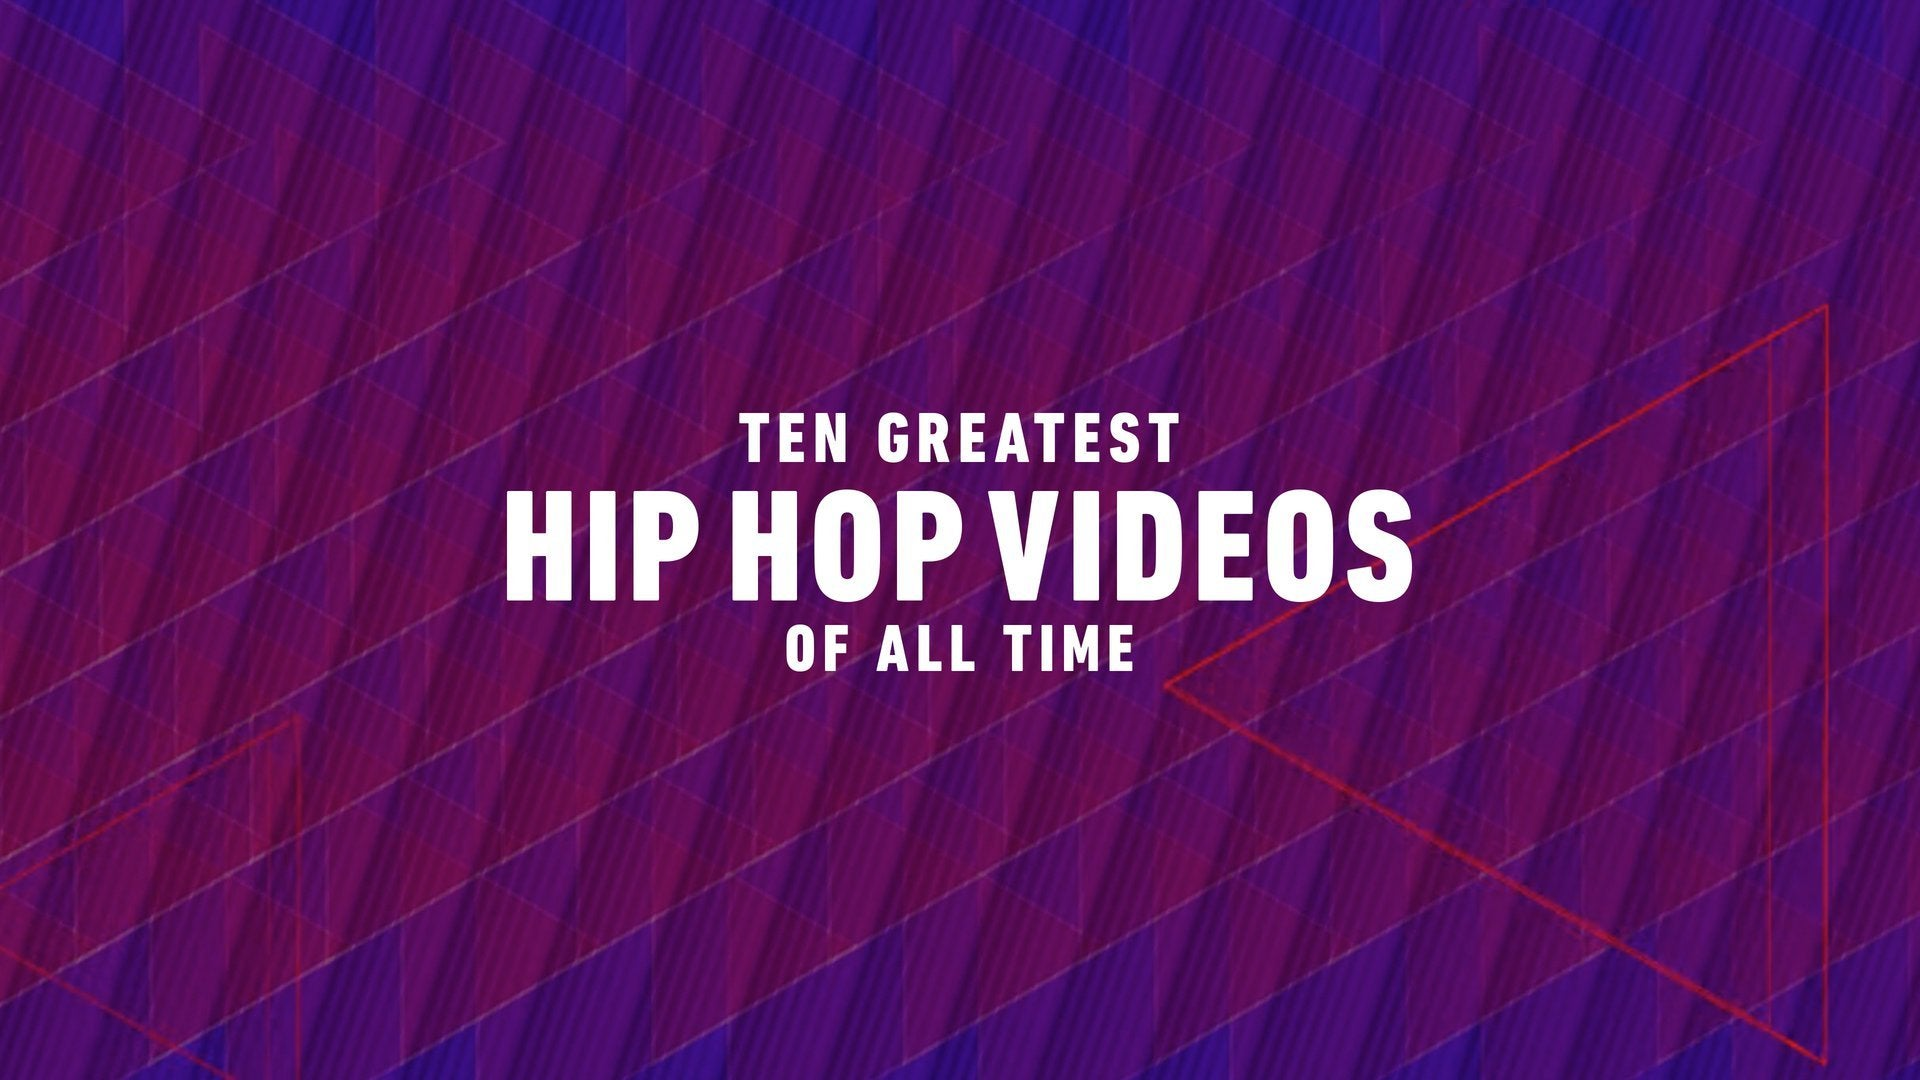 Ten Greatest Hip Hop Videos of All Time